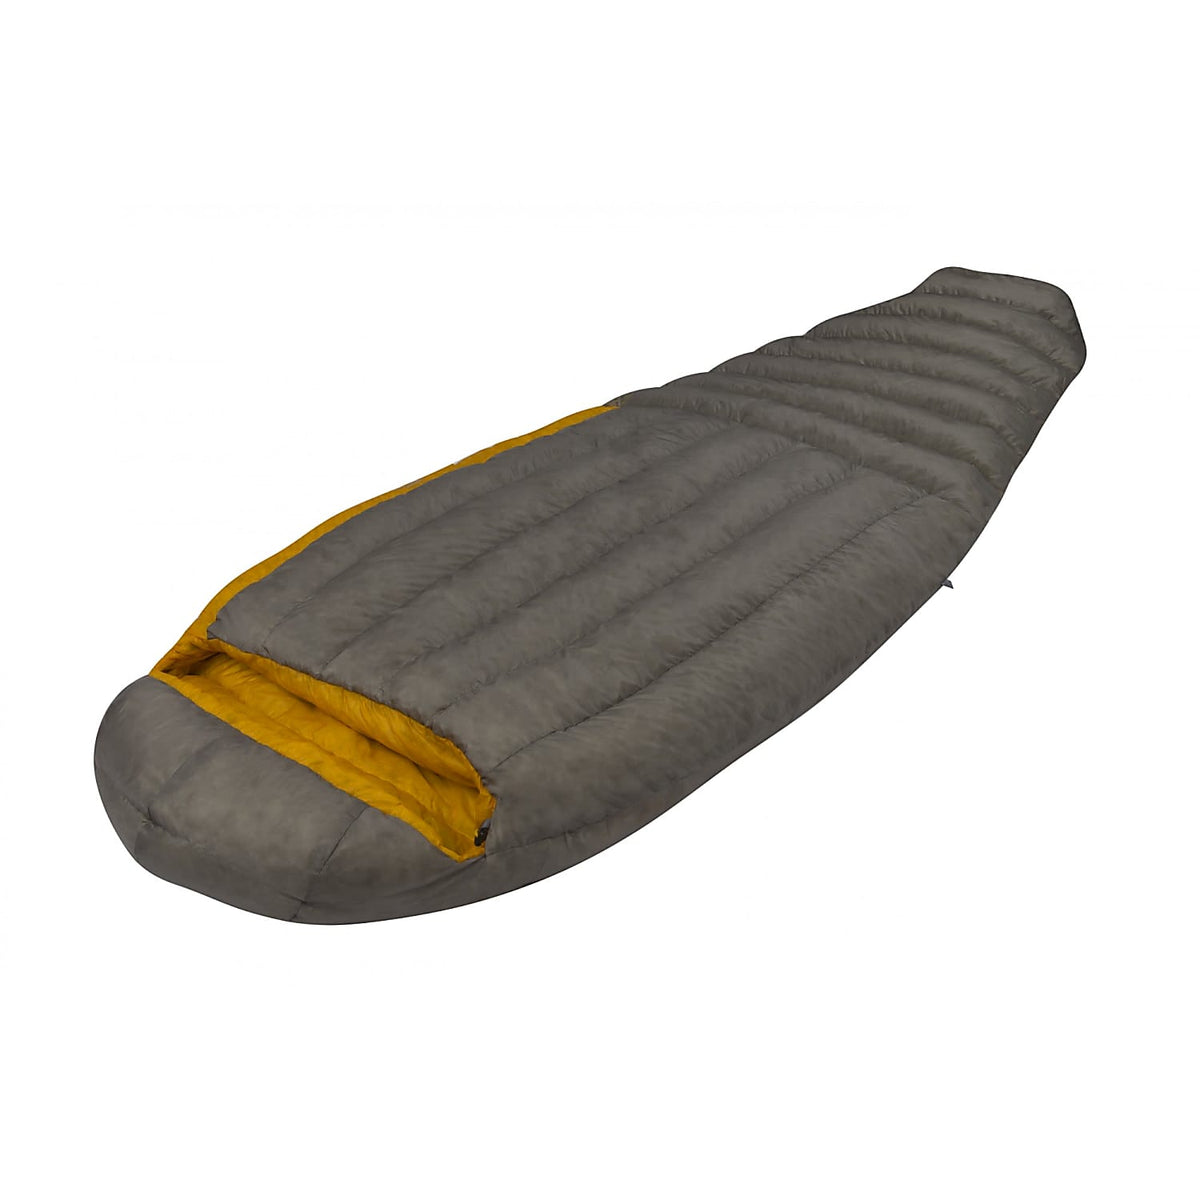 Sea to Summit Spark II sleeping bag side view shown fully closed